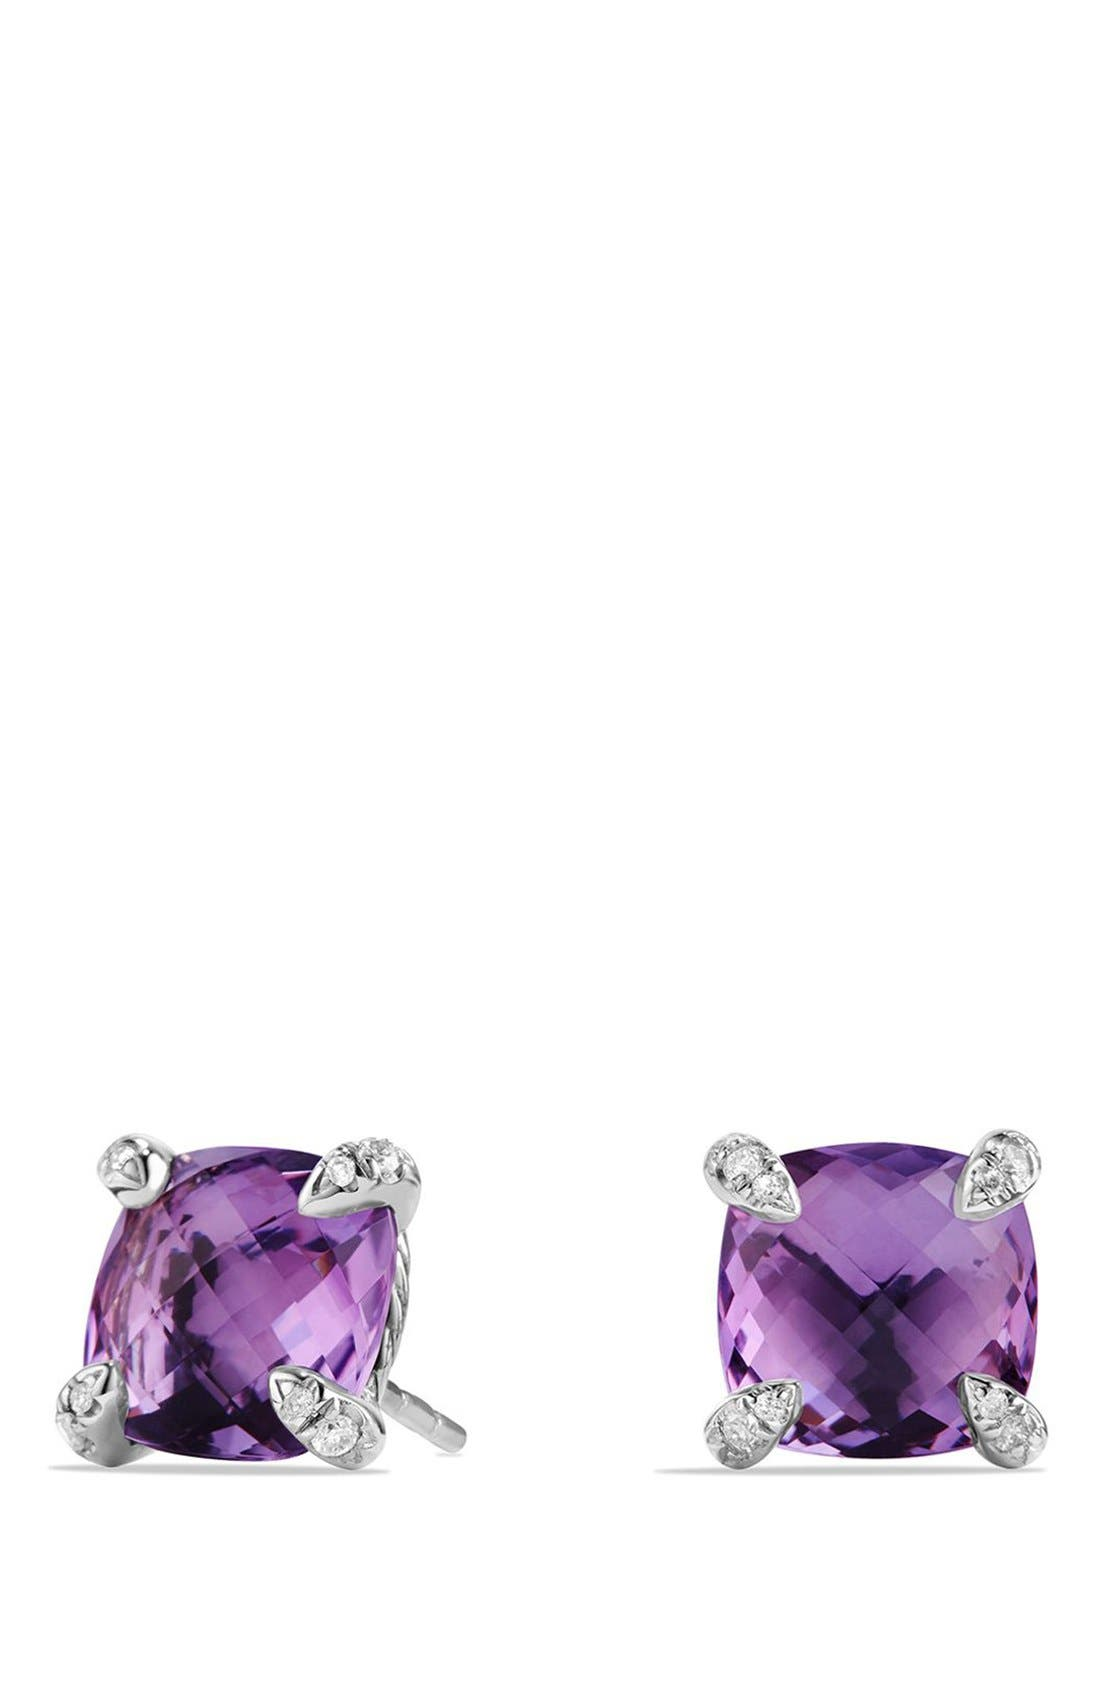 Alternate Image 1 Selected - David Yurman 'Châtelaine' Earrings with Semiprecious Stones and Diamonds